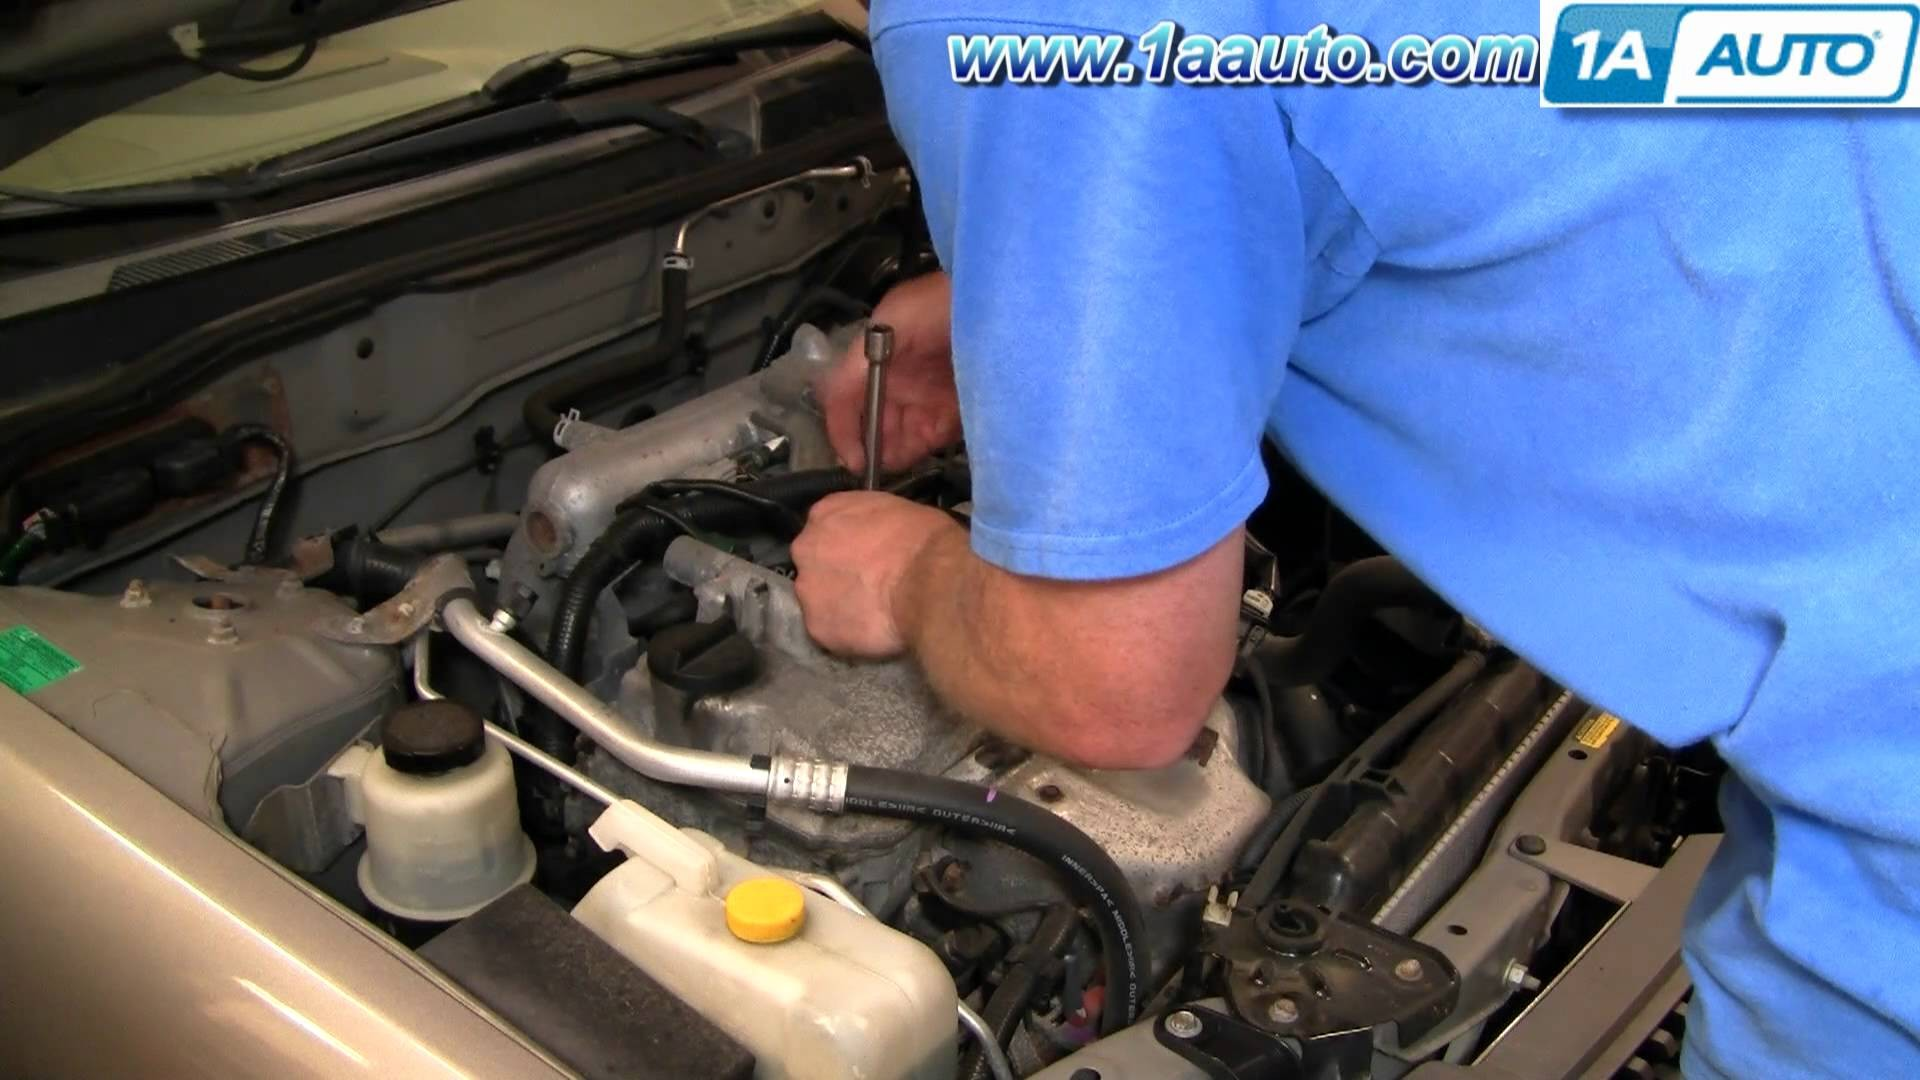 1994 Nissan Sentra Engine Diagram How to Install Replace Spark Plugs Nissan Sentra 04 06 1aauto Of 1994 Nissan Sentra Engine Diagram